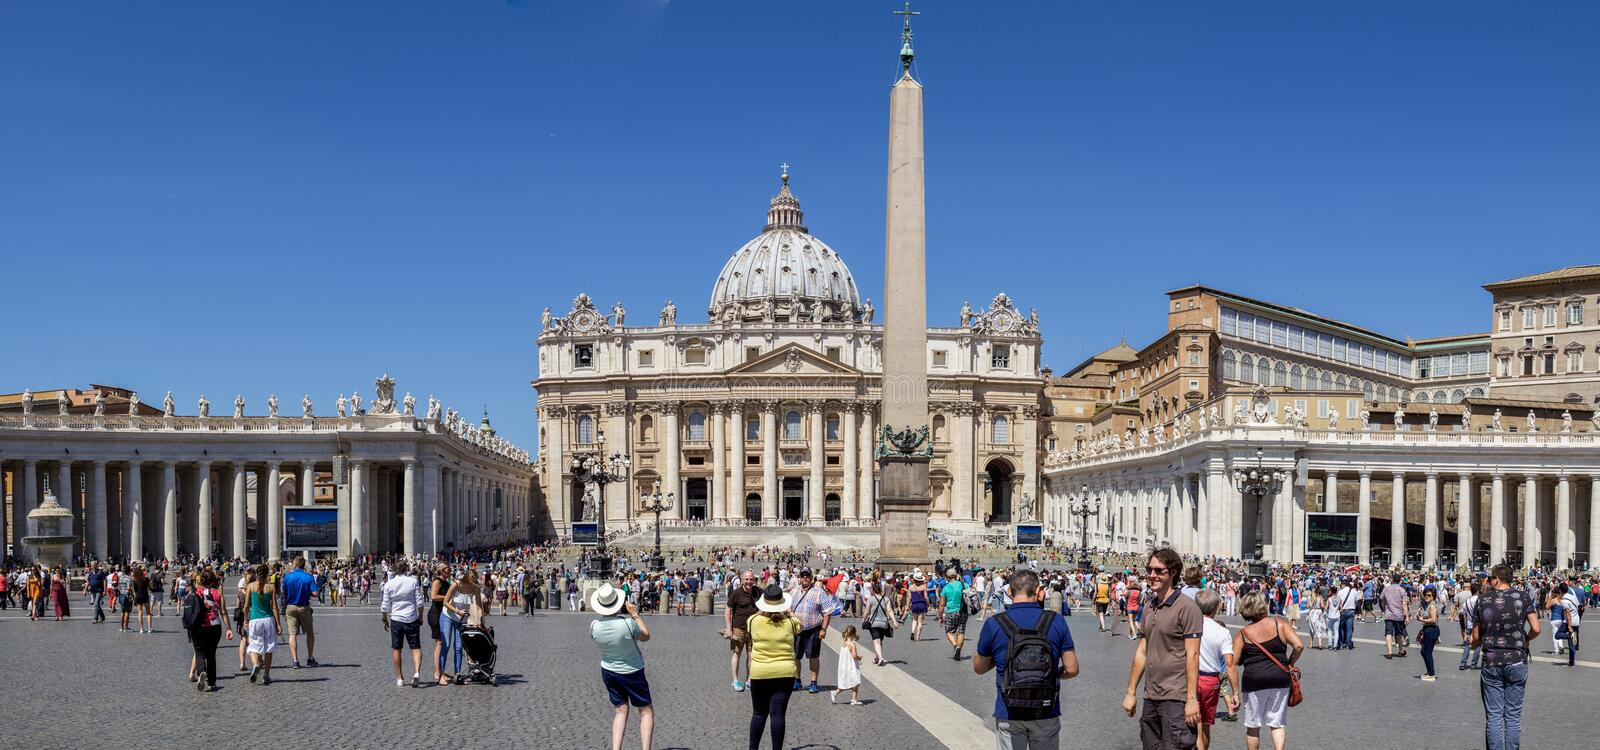 St Peter s Square stock image